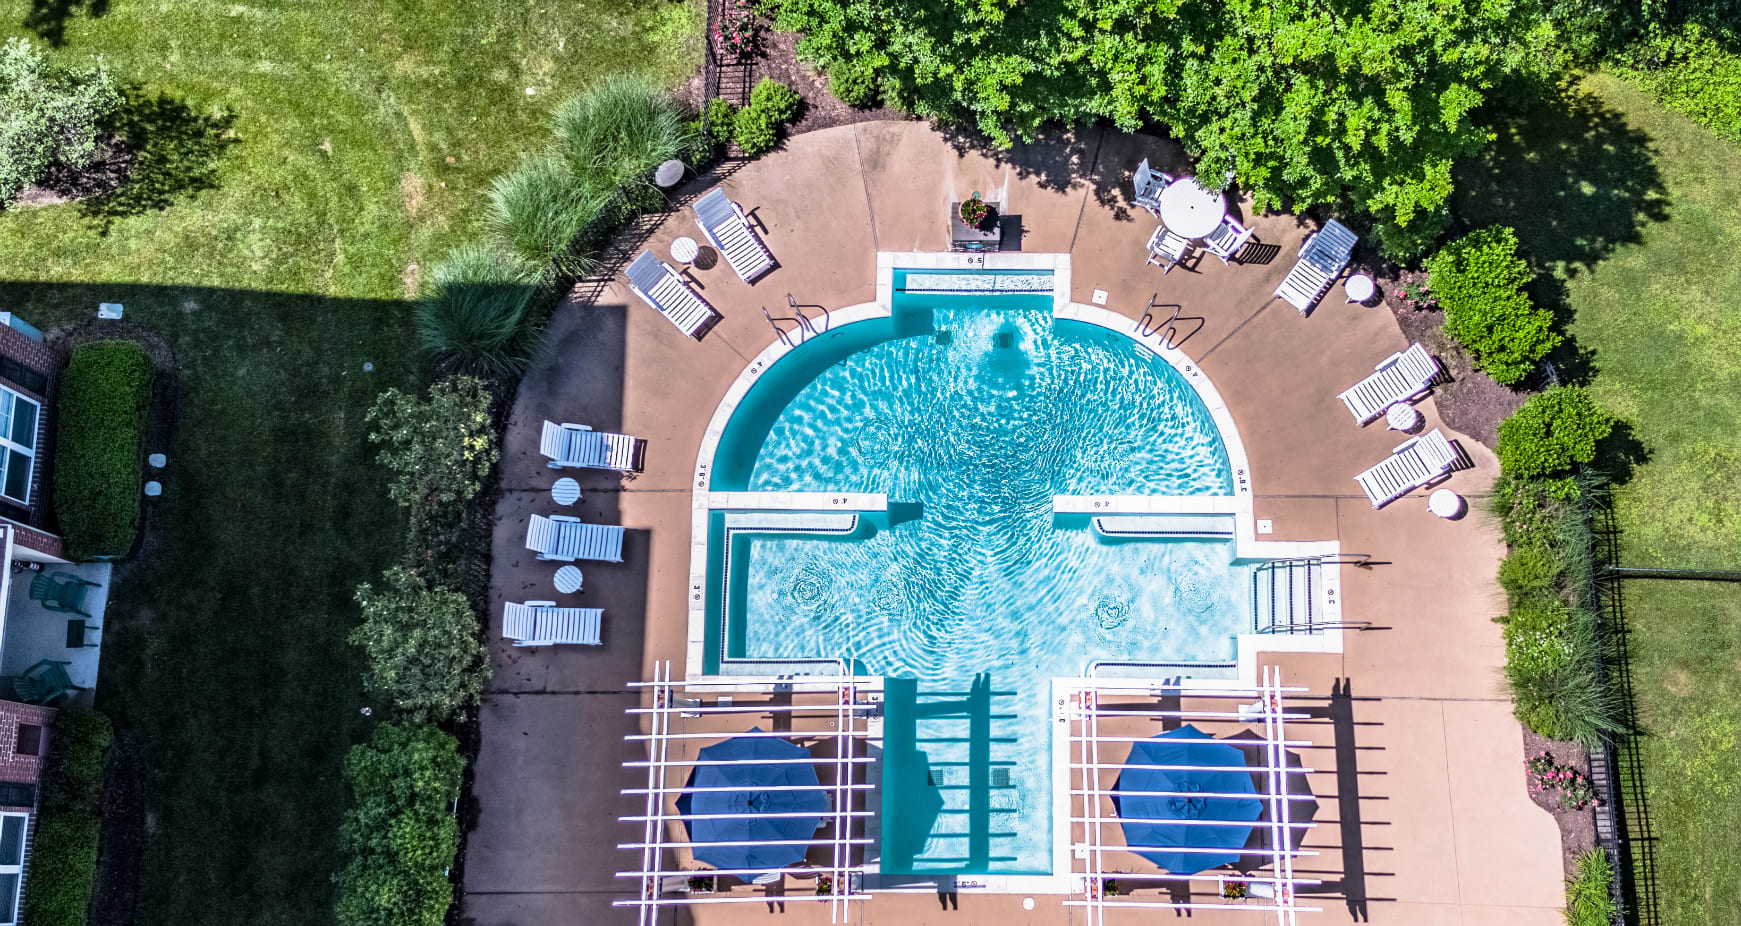 Seasonal pool and tanning deck within steps from your apartment backdoor. Enjoy luscious green space and the beauty of nature every day at Alexander Heights.